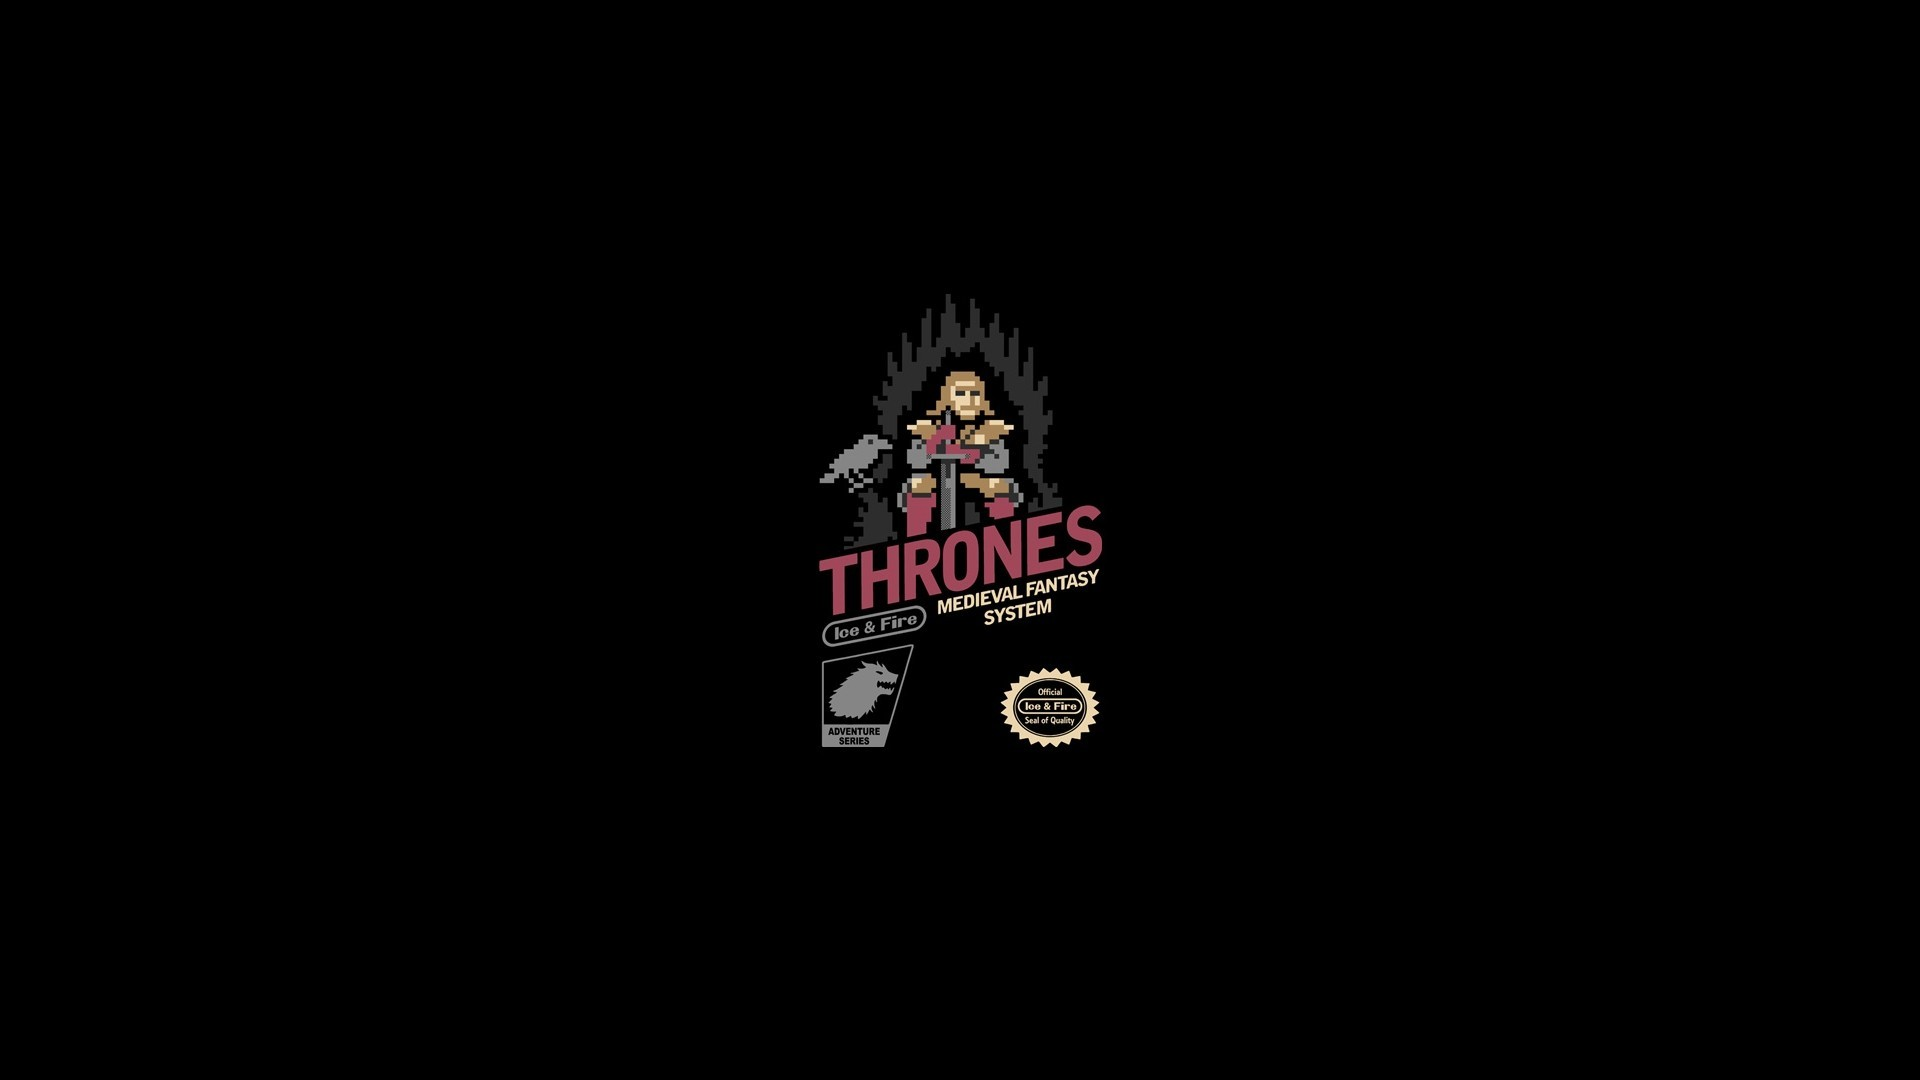 1920x1080 abstract, video, solid, Game of Thrones, 8bit, simplistic, simple .